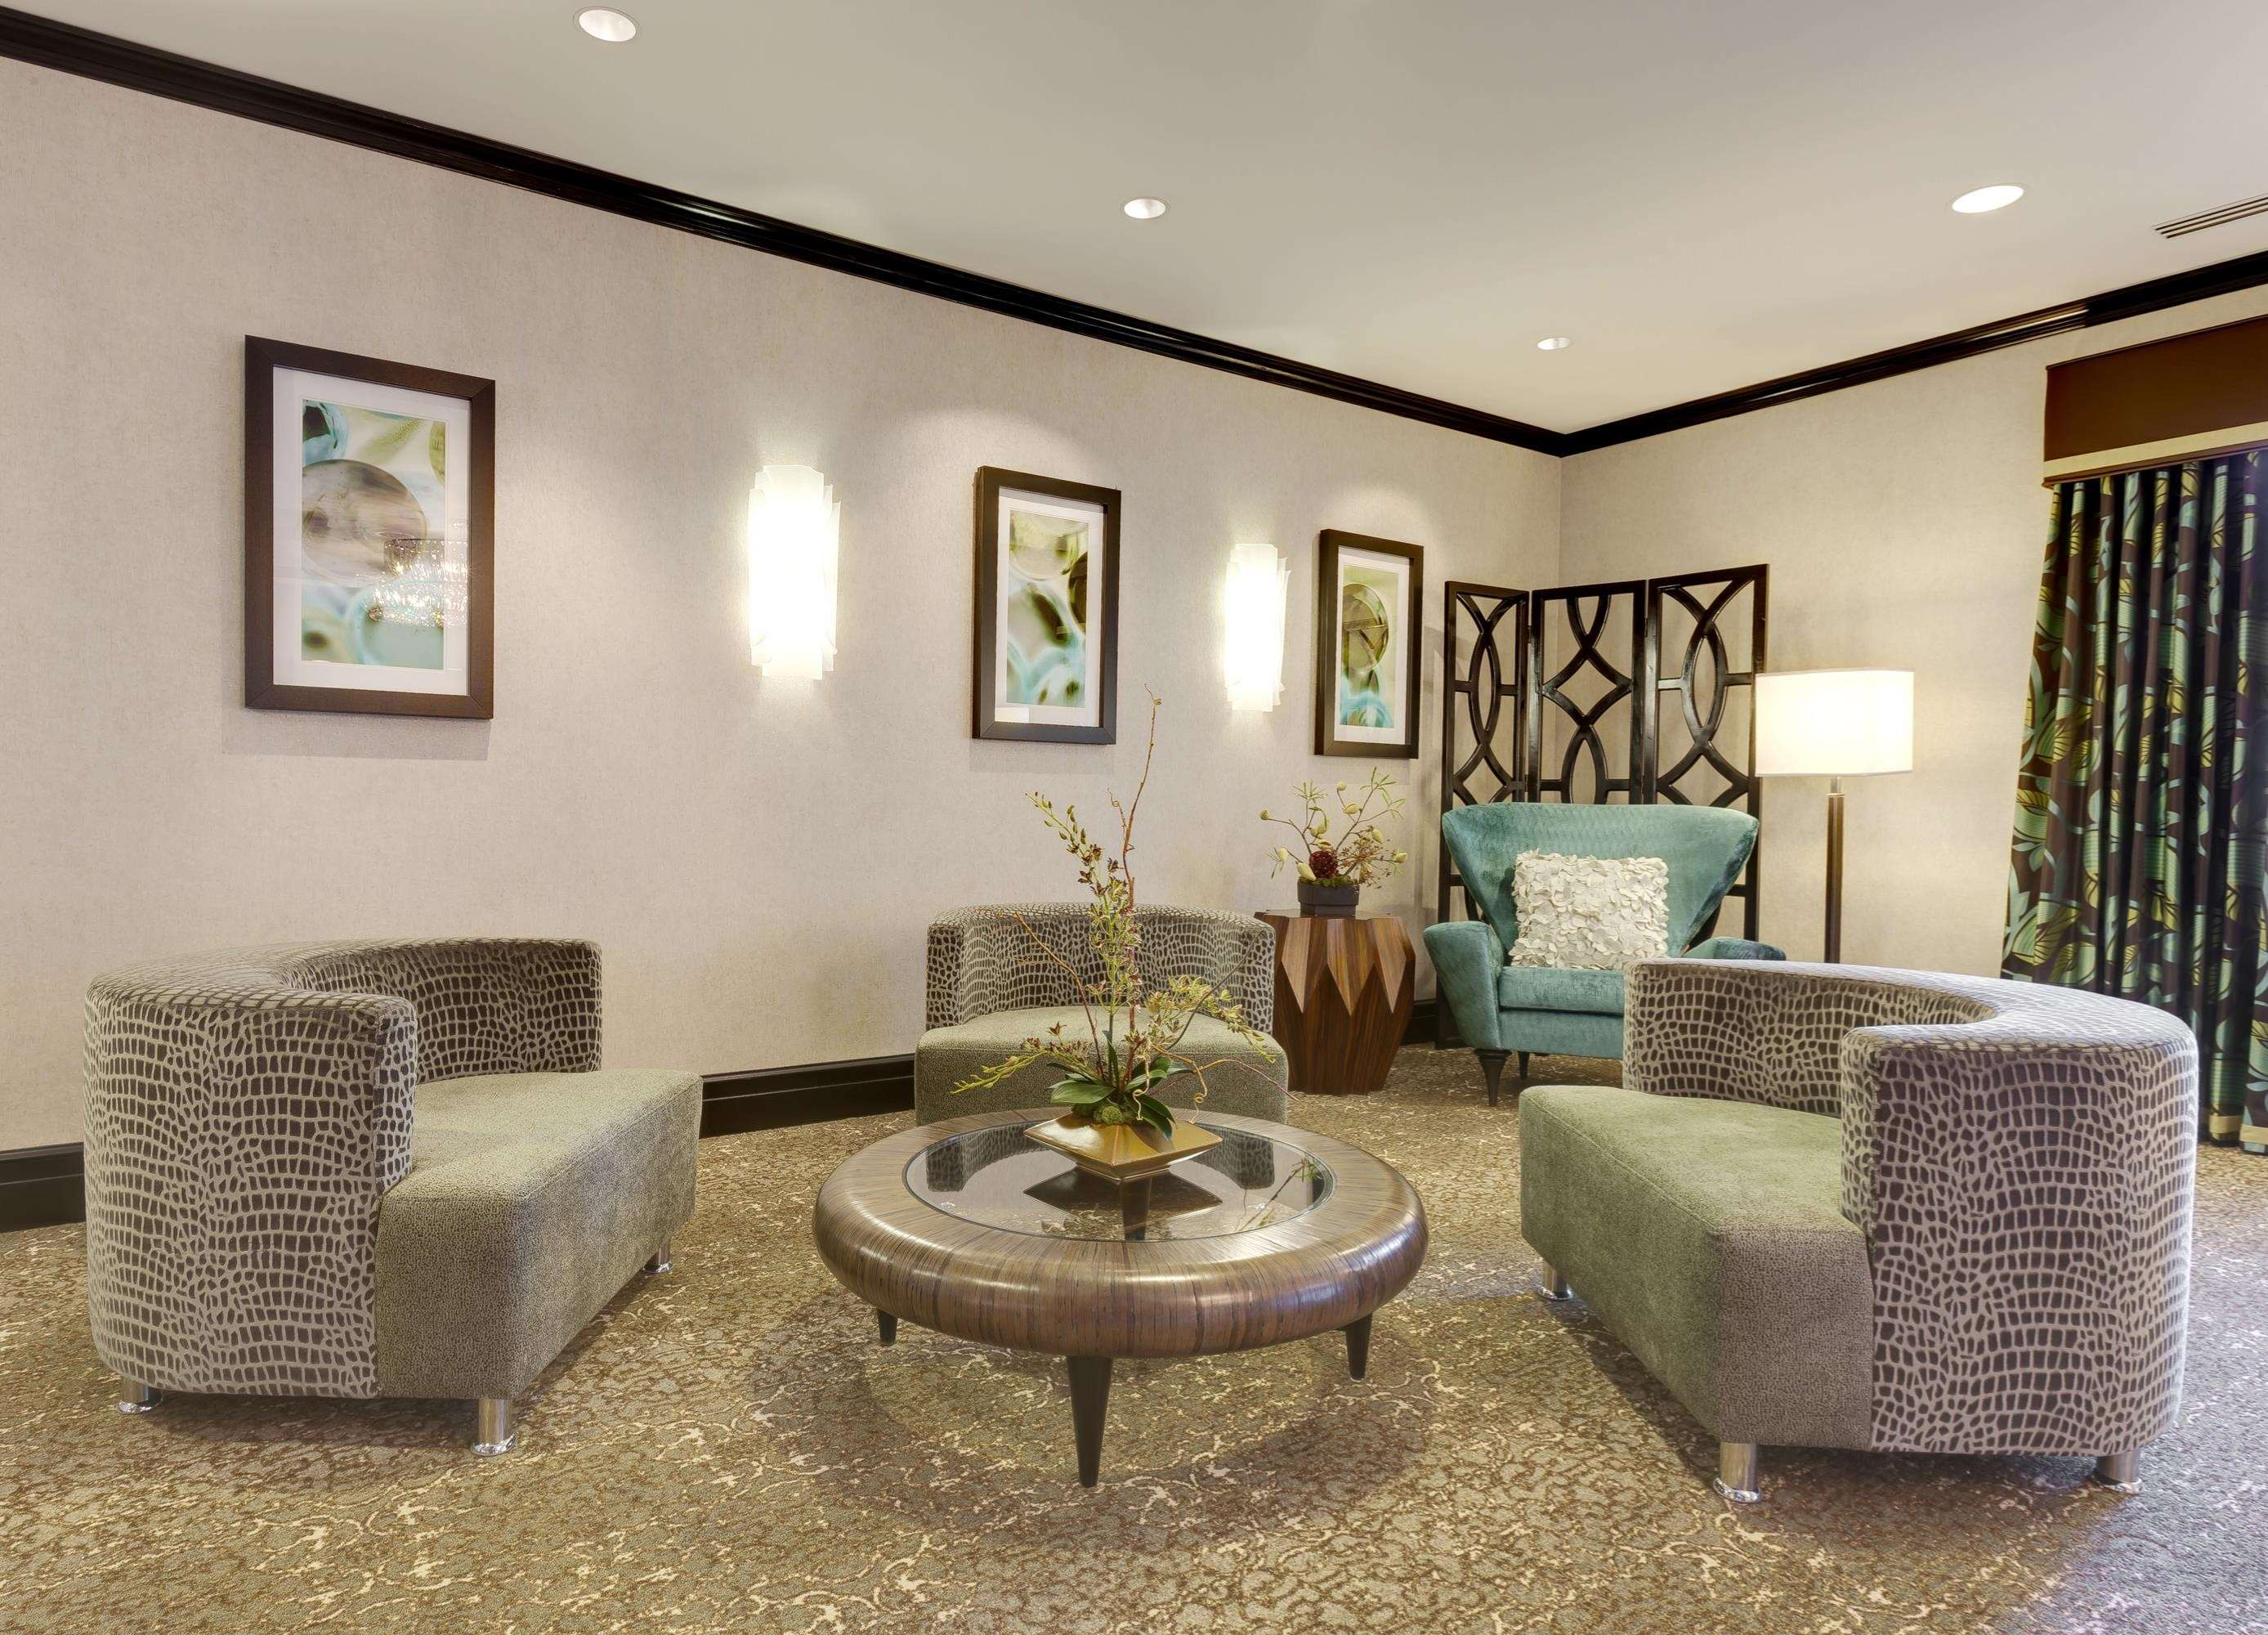 Homewood Suites by Hilton Boston/Canton, MA image 6